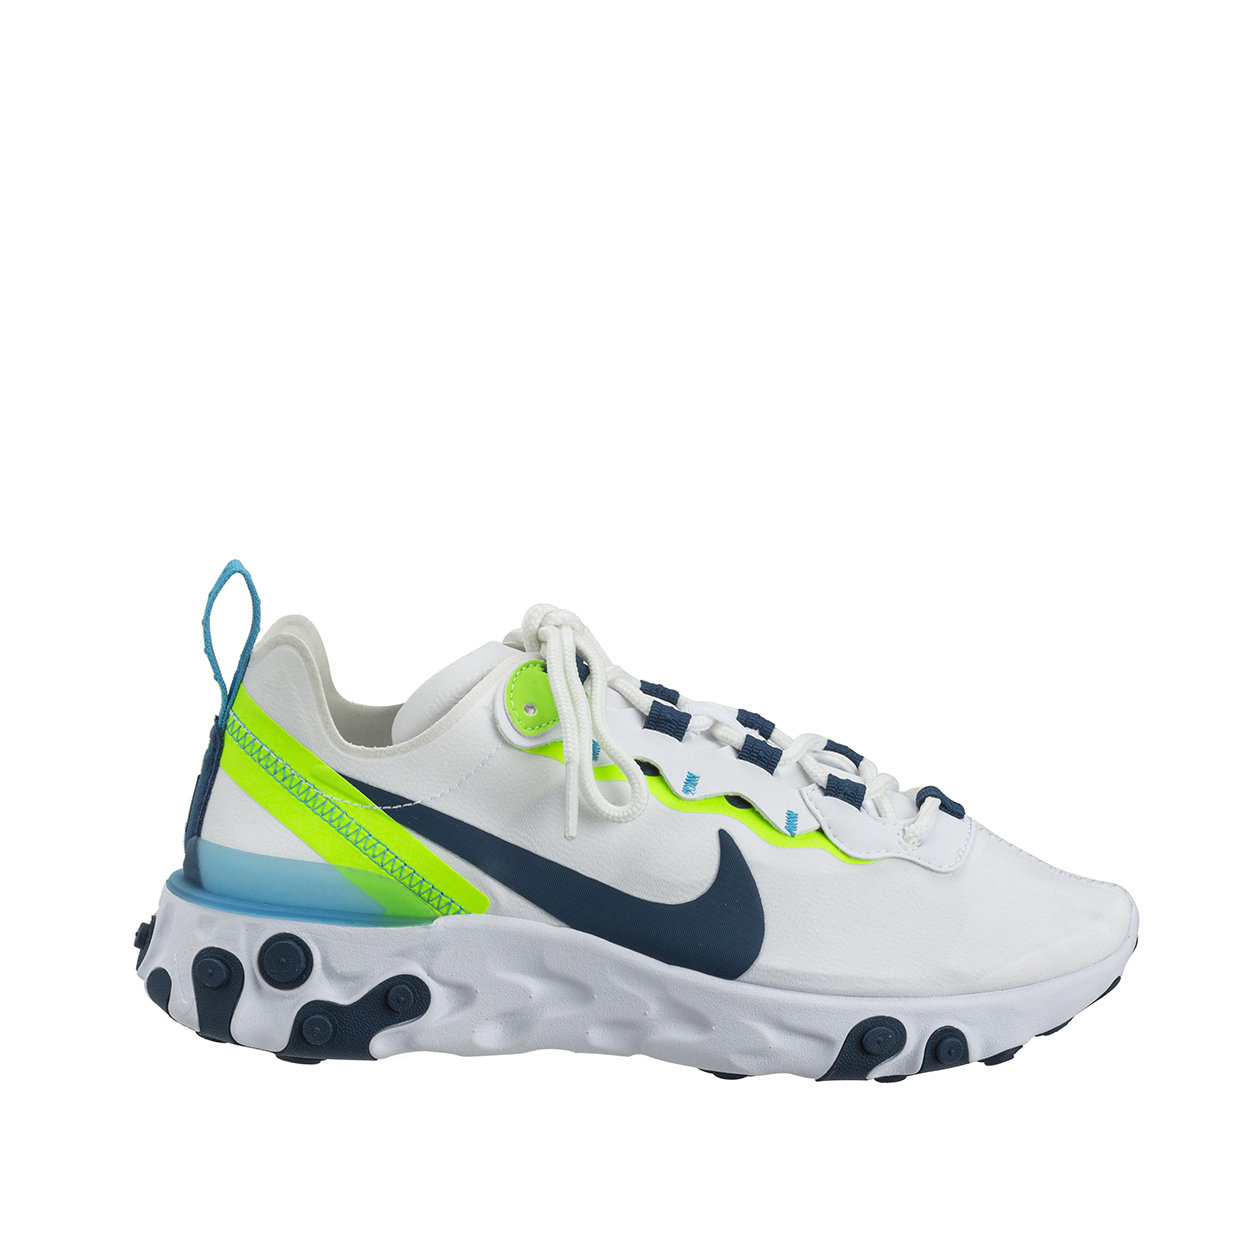 Sneakers Nike React Element 55 white and green fluo